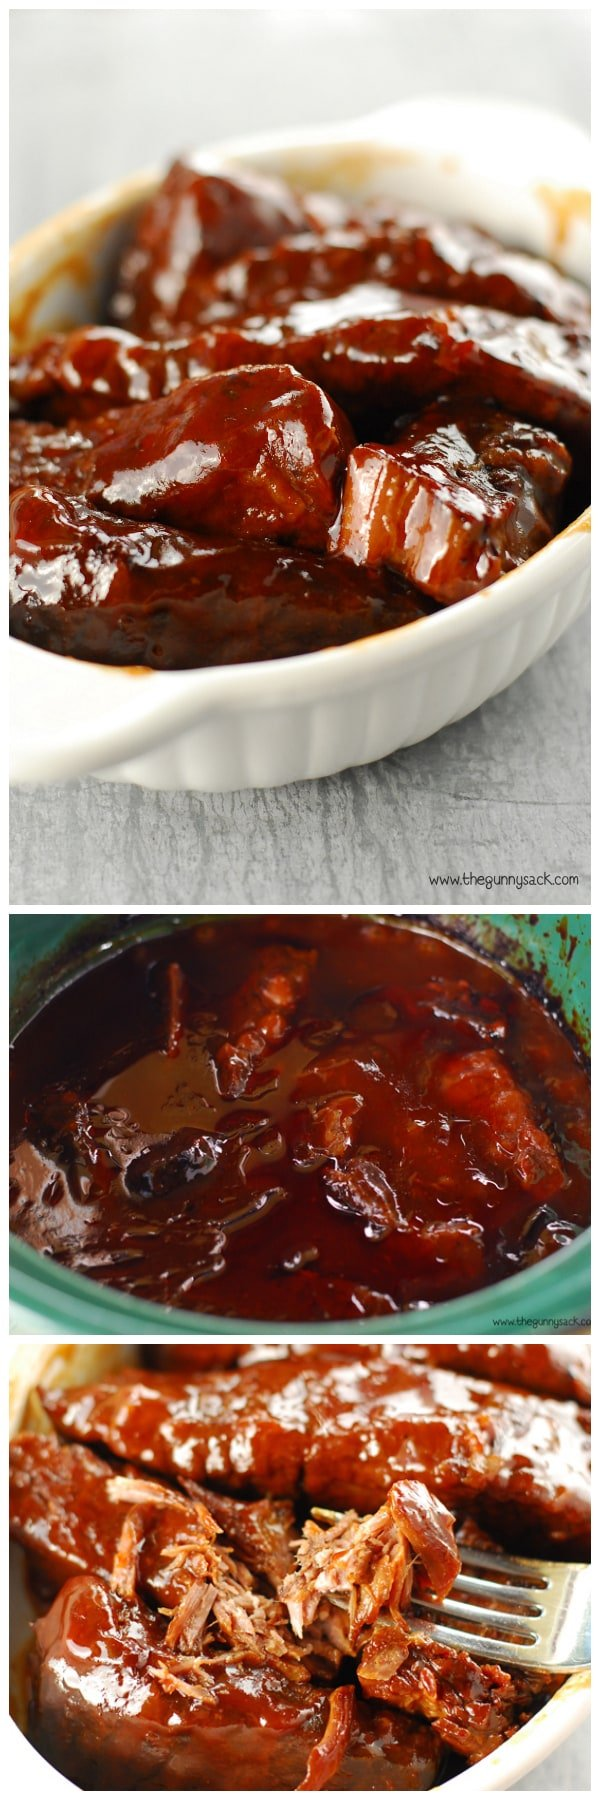 how to cook ribs in slow cooker with bbq sauce